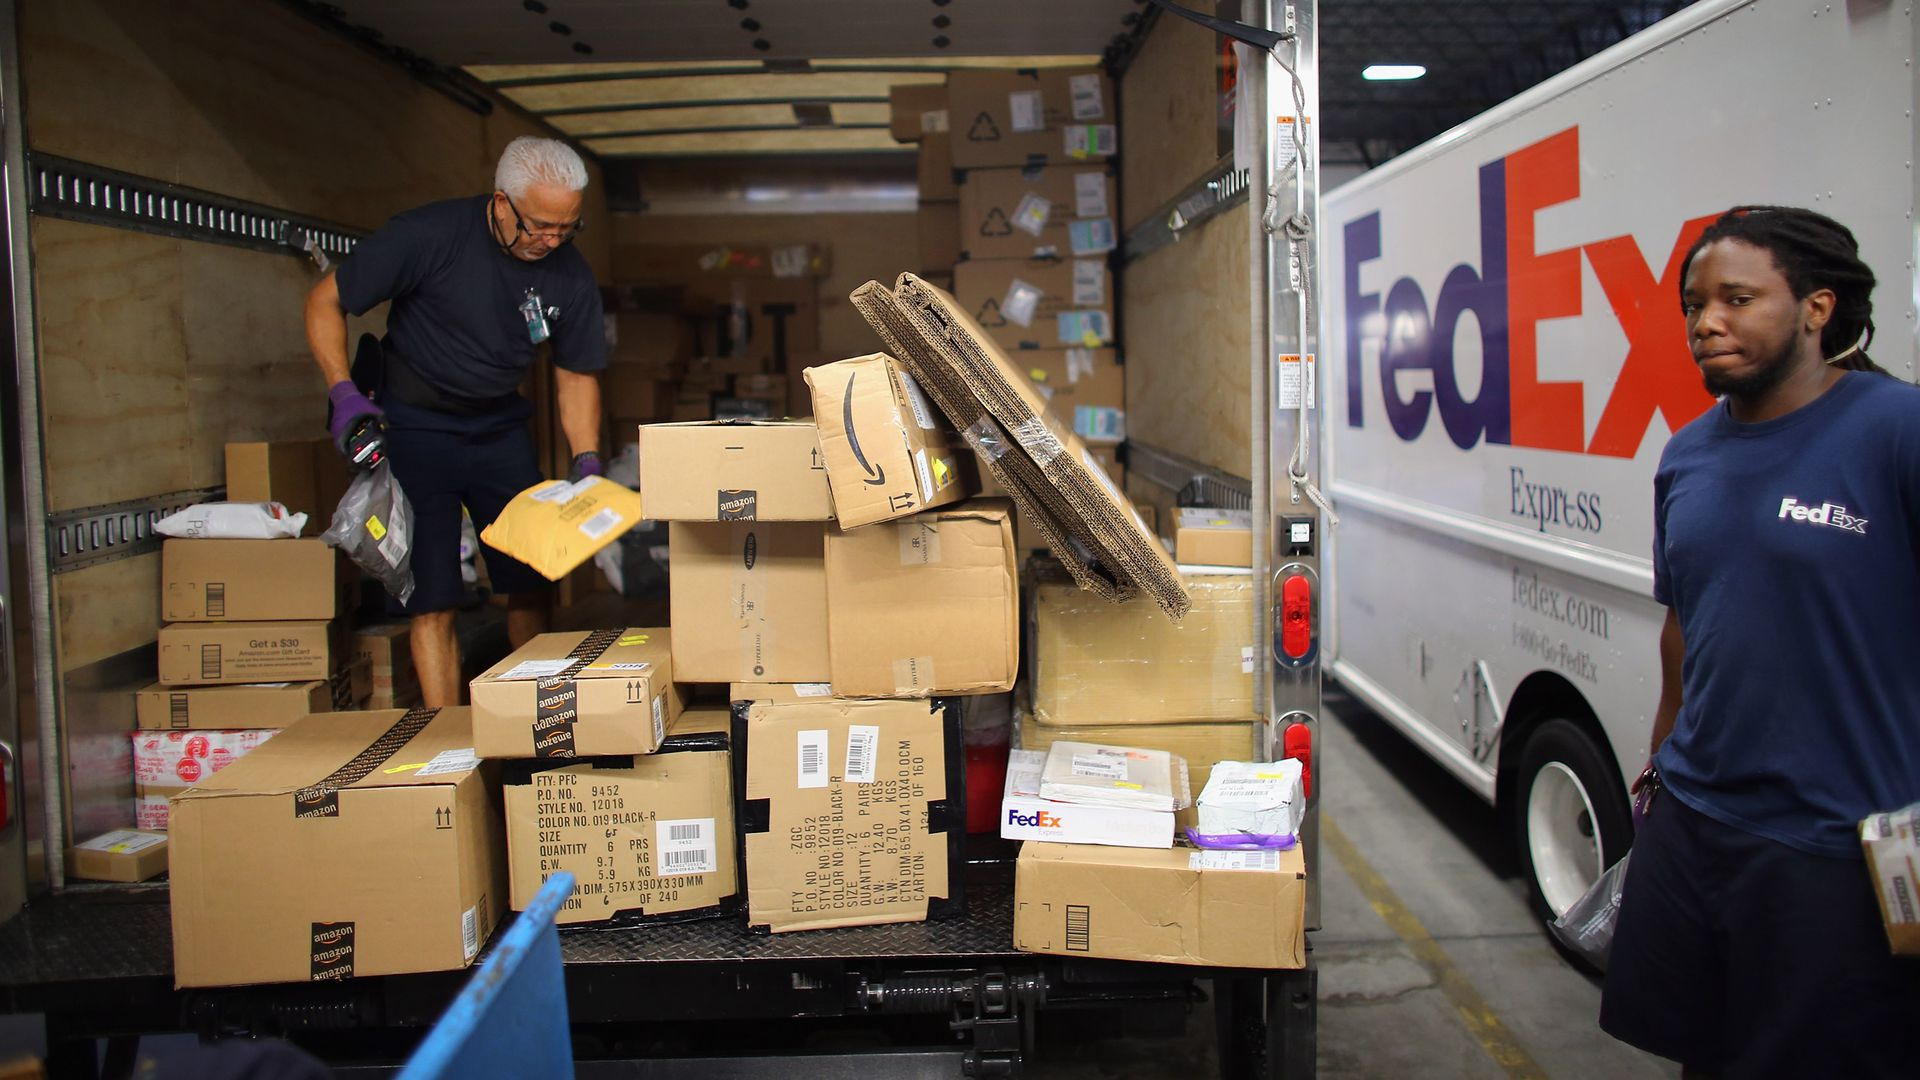 Fedex workers loading packages into a truck